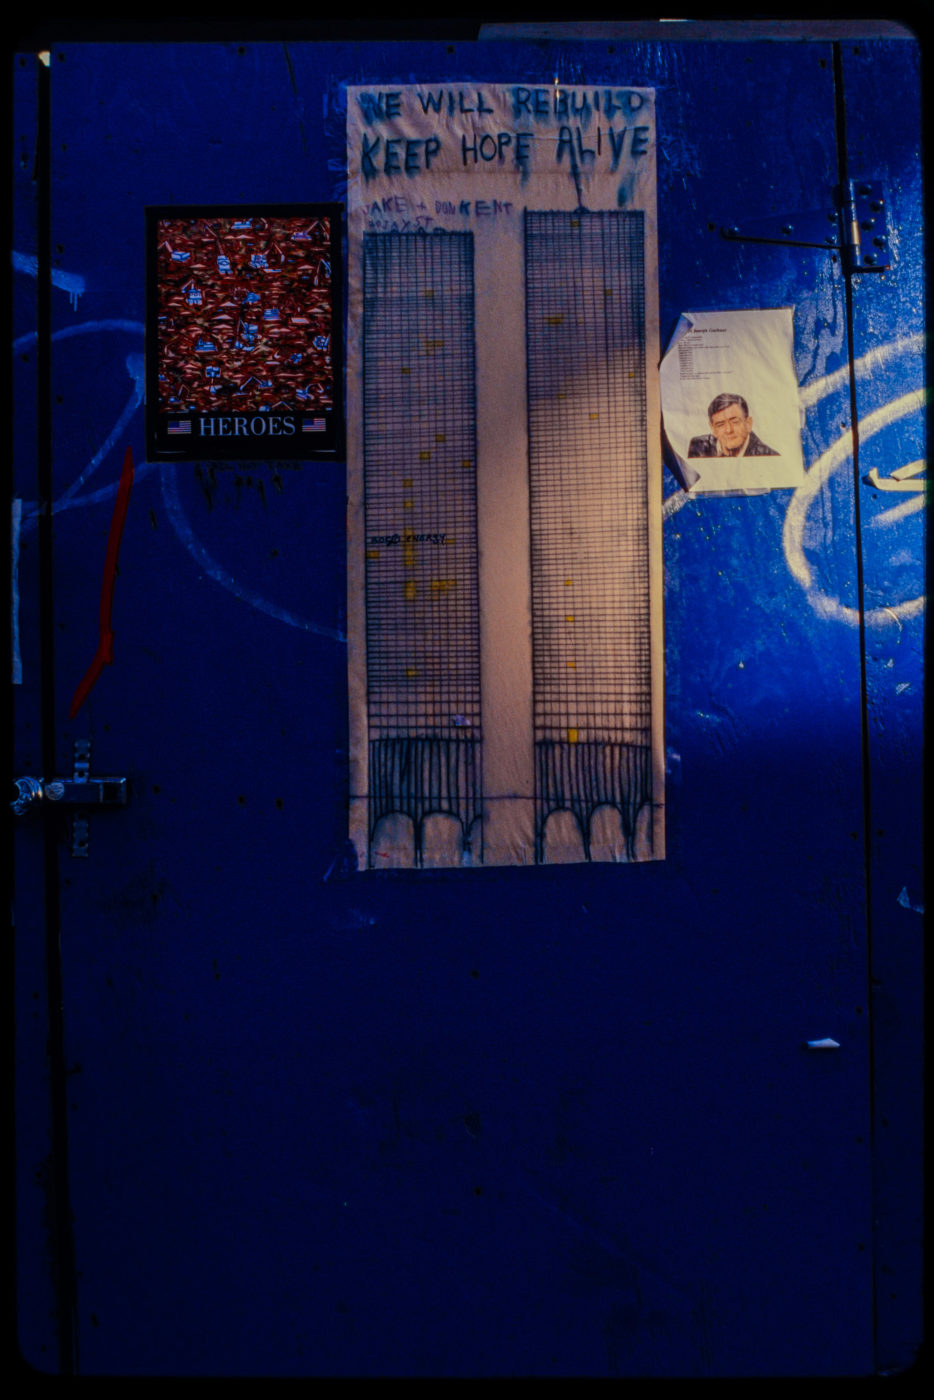 We Will Rebuild Keep Hope Alive Artwork with Other Flyers on Blue Door, Ray of Light Coming in From Right.jpg